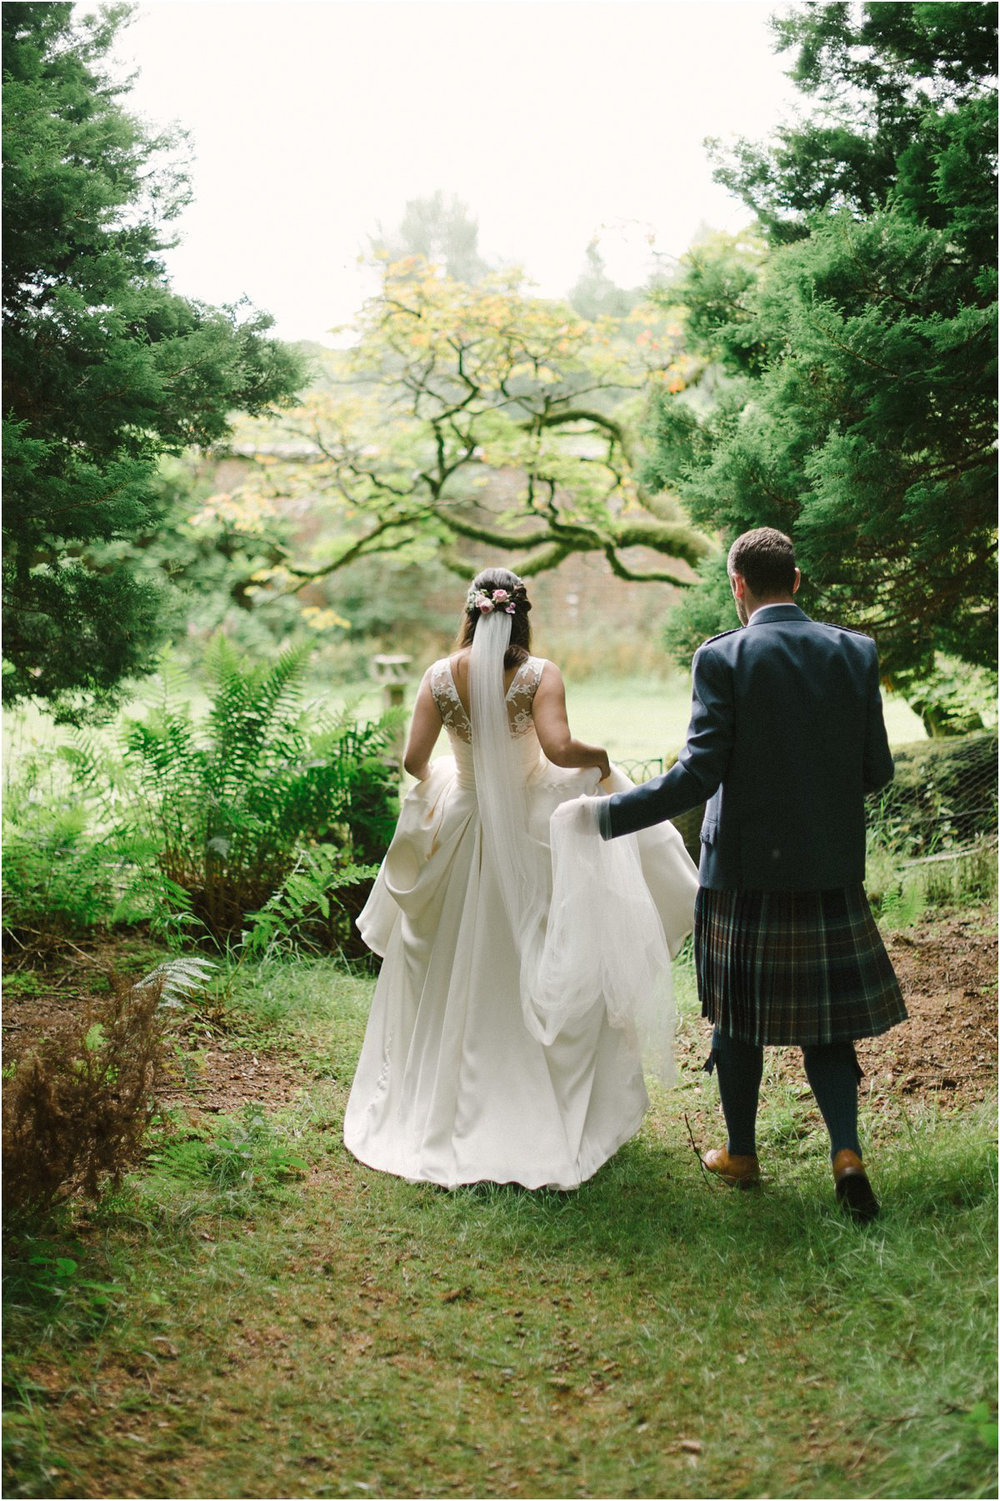 Bride and groom in kilt walking away in a forrest near Blairquhan castle in Scotland by Cro & Kow